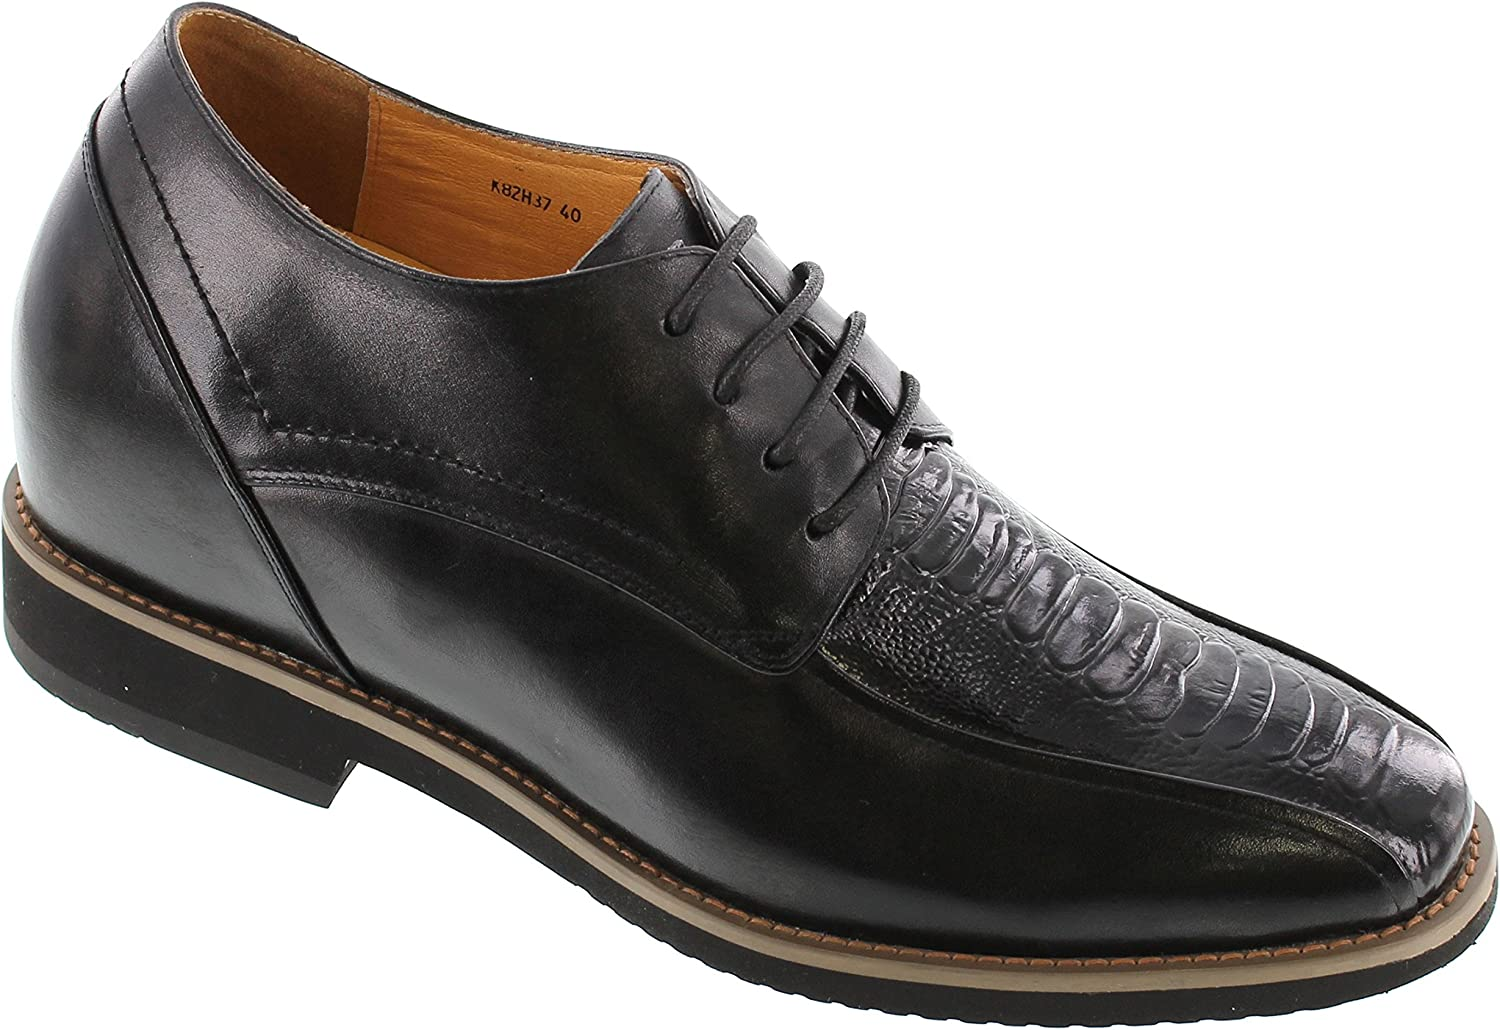 TOTO Men's Invisible Height Increasing Elevator Shoes - Black Two-Tone Leather Lace-up Formal Oxfords - 3.6 Inches Taller - H8237